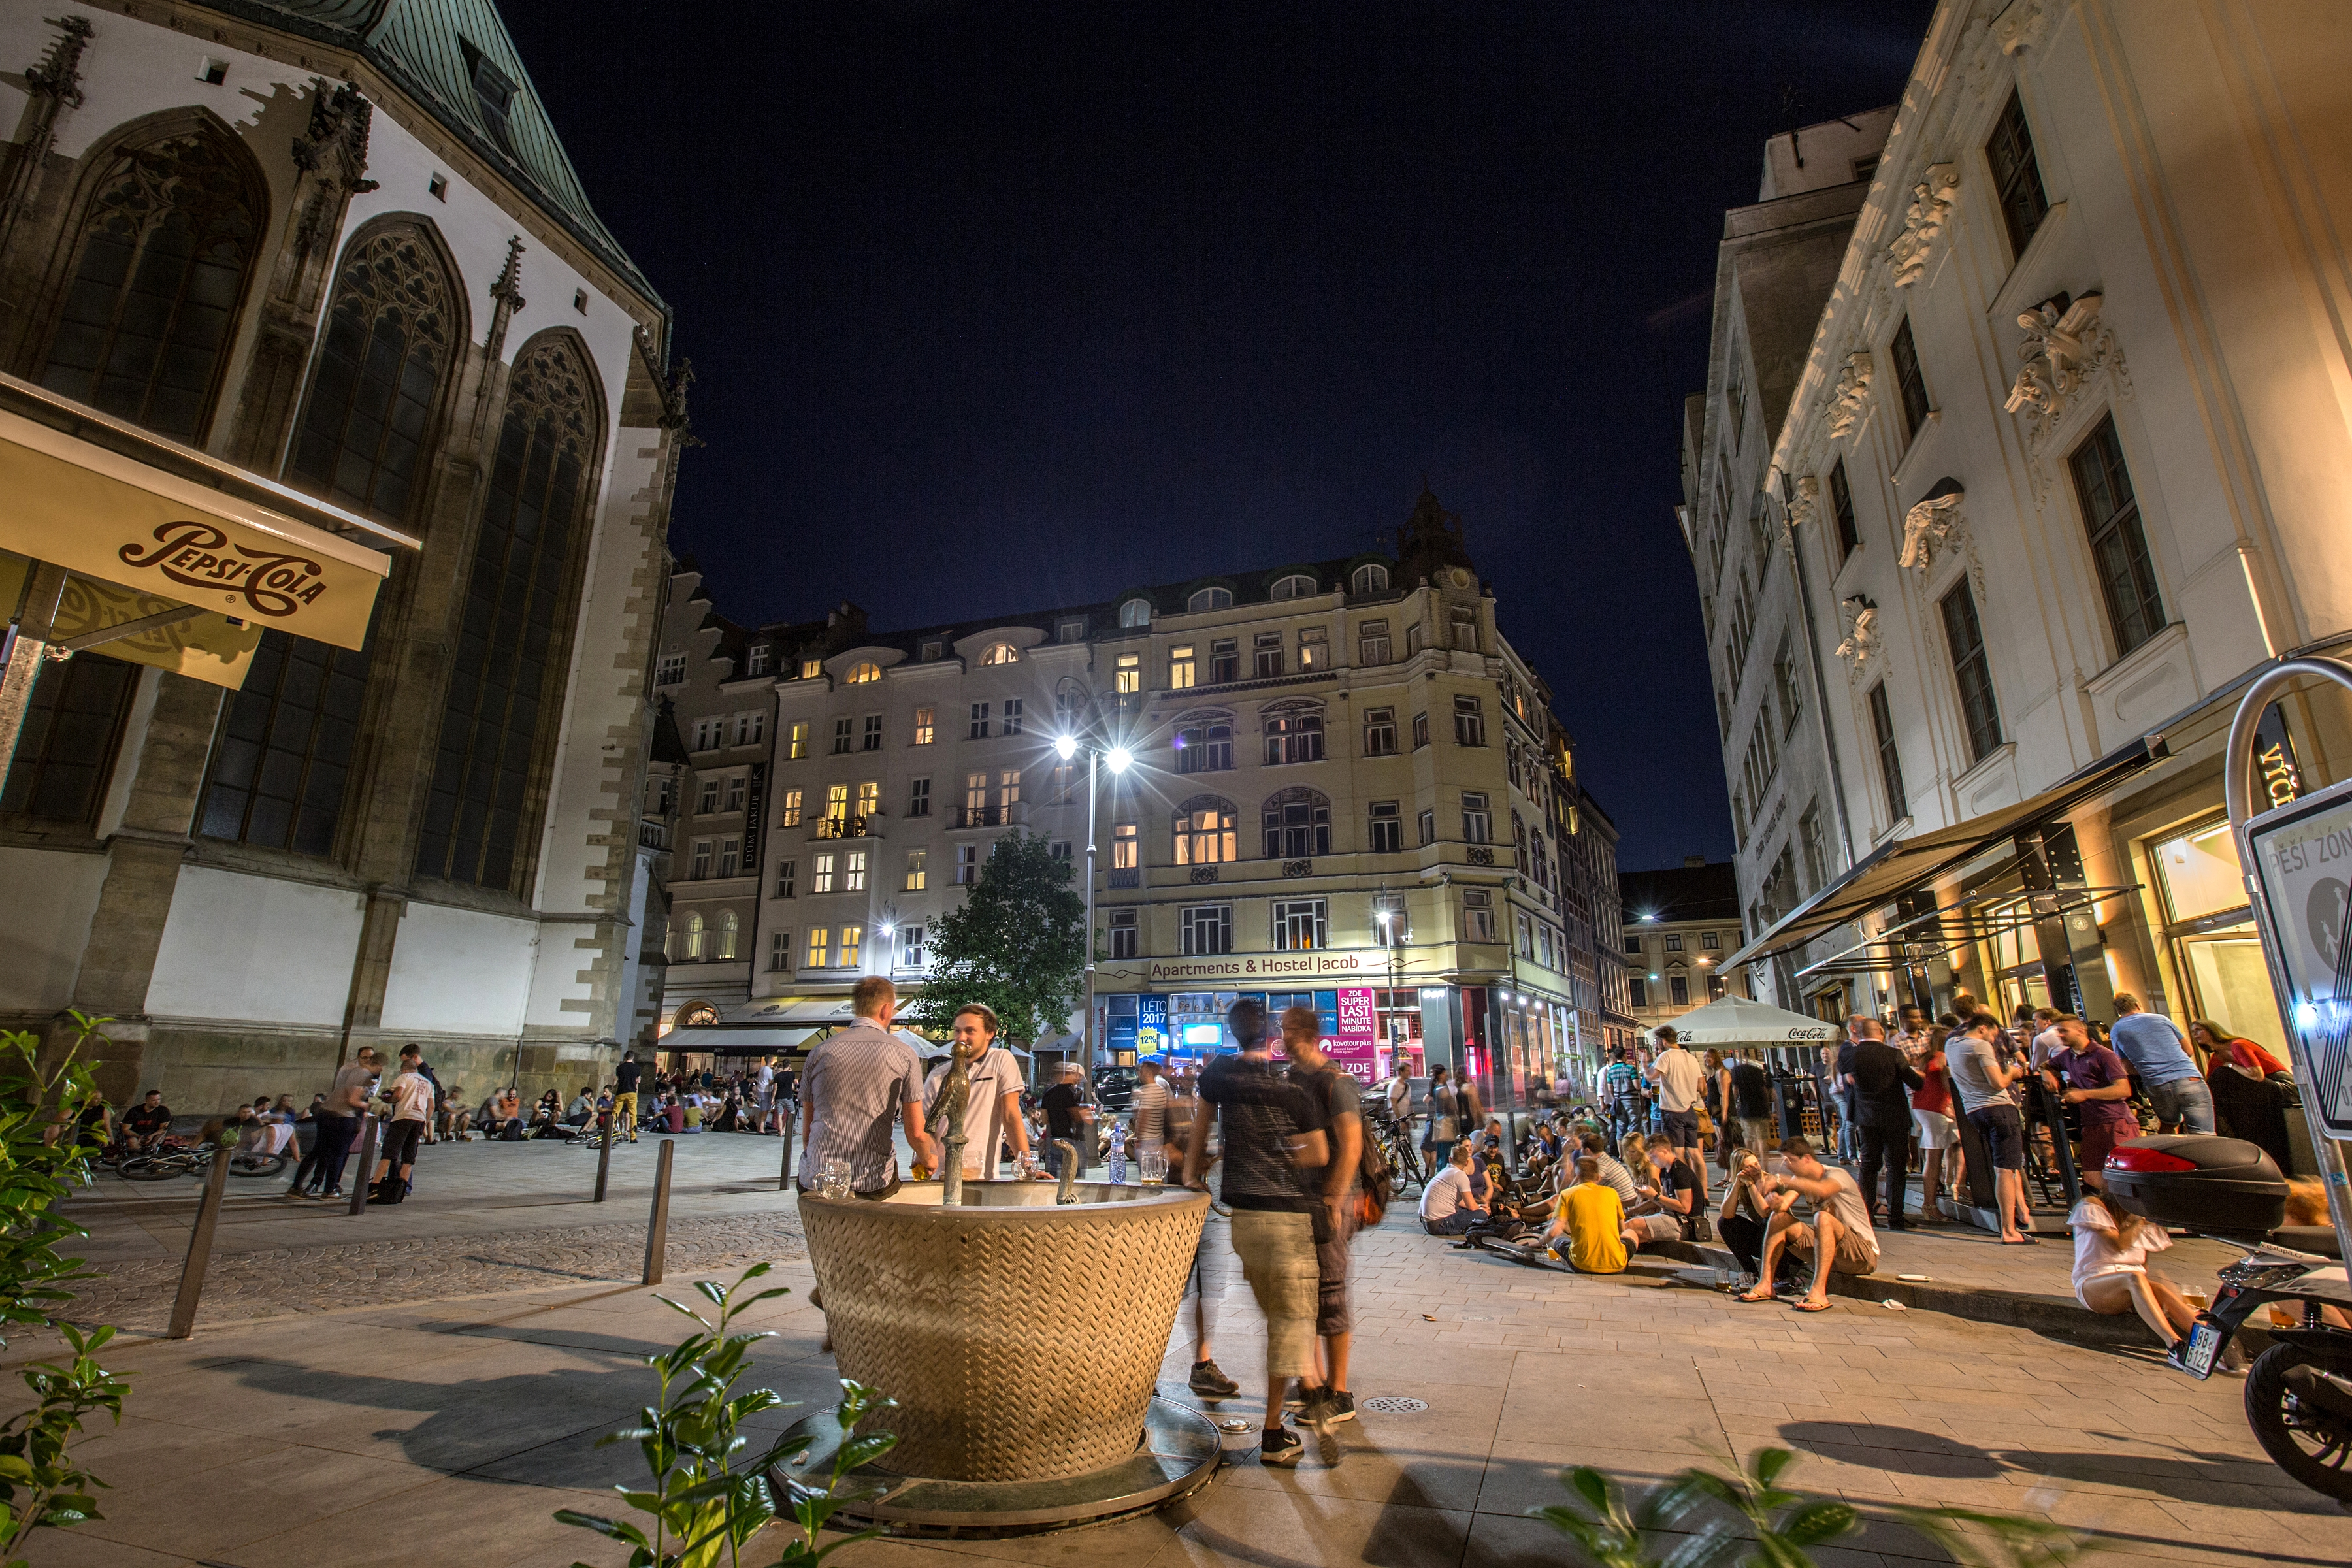 St James' Square in Brno at night.